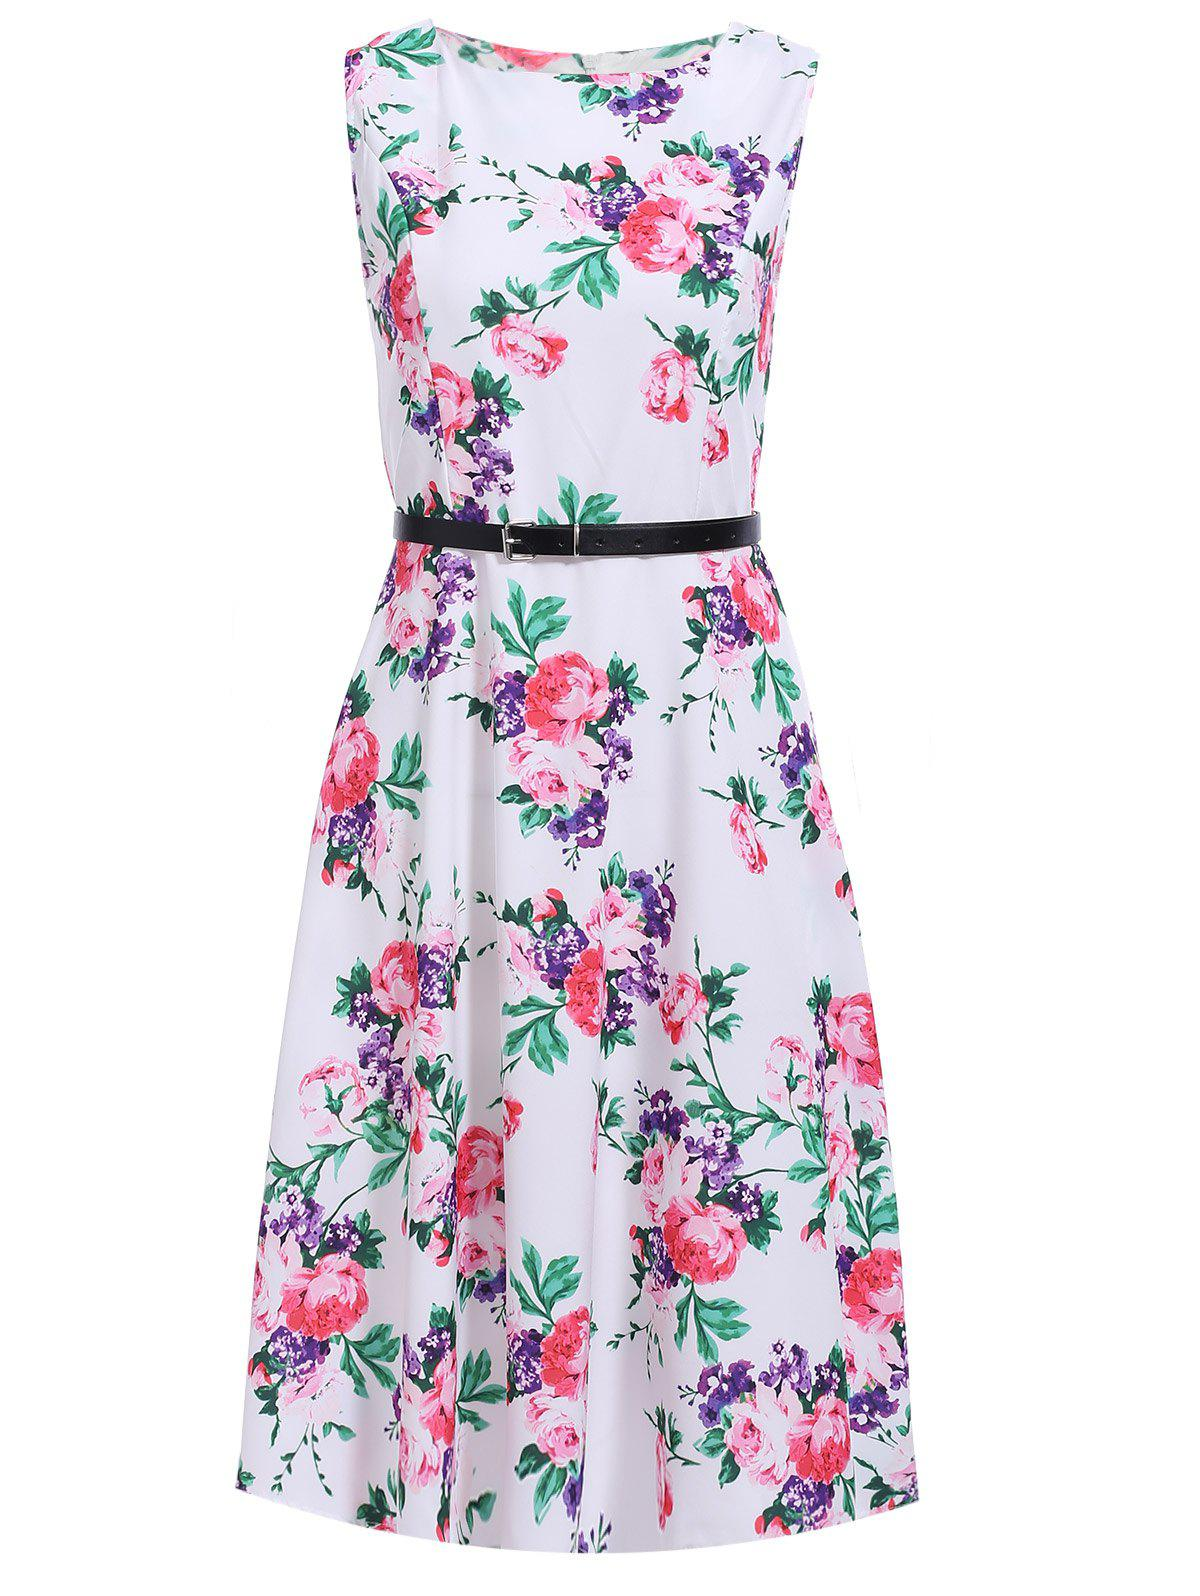 Chic Floral Print Belted Sleeveless Dress For Women